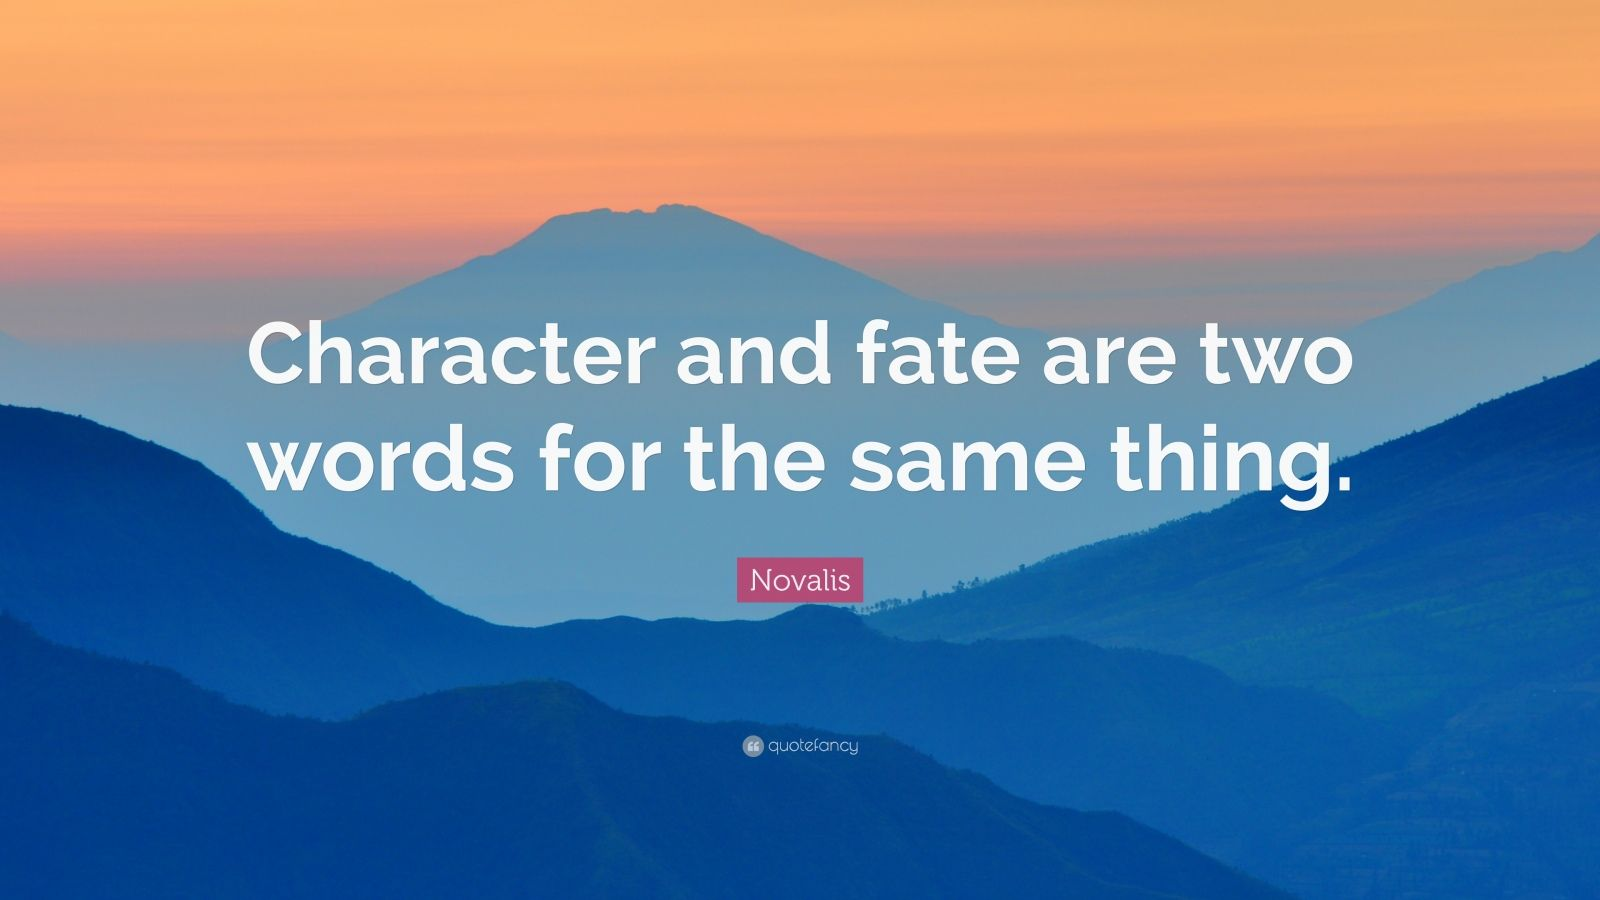 """Novalis Quote: """"Character and fate are two words for the same thing."""""""